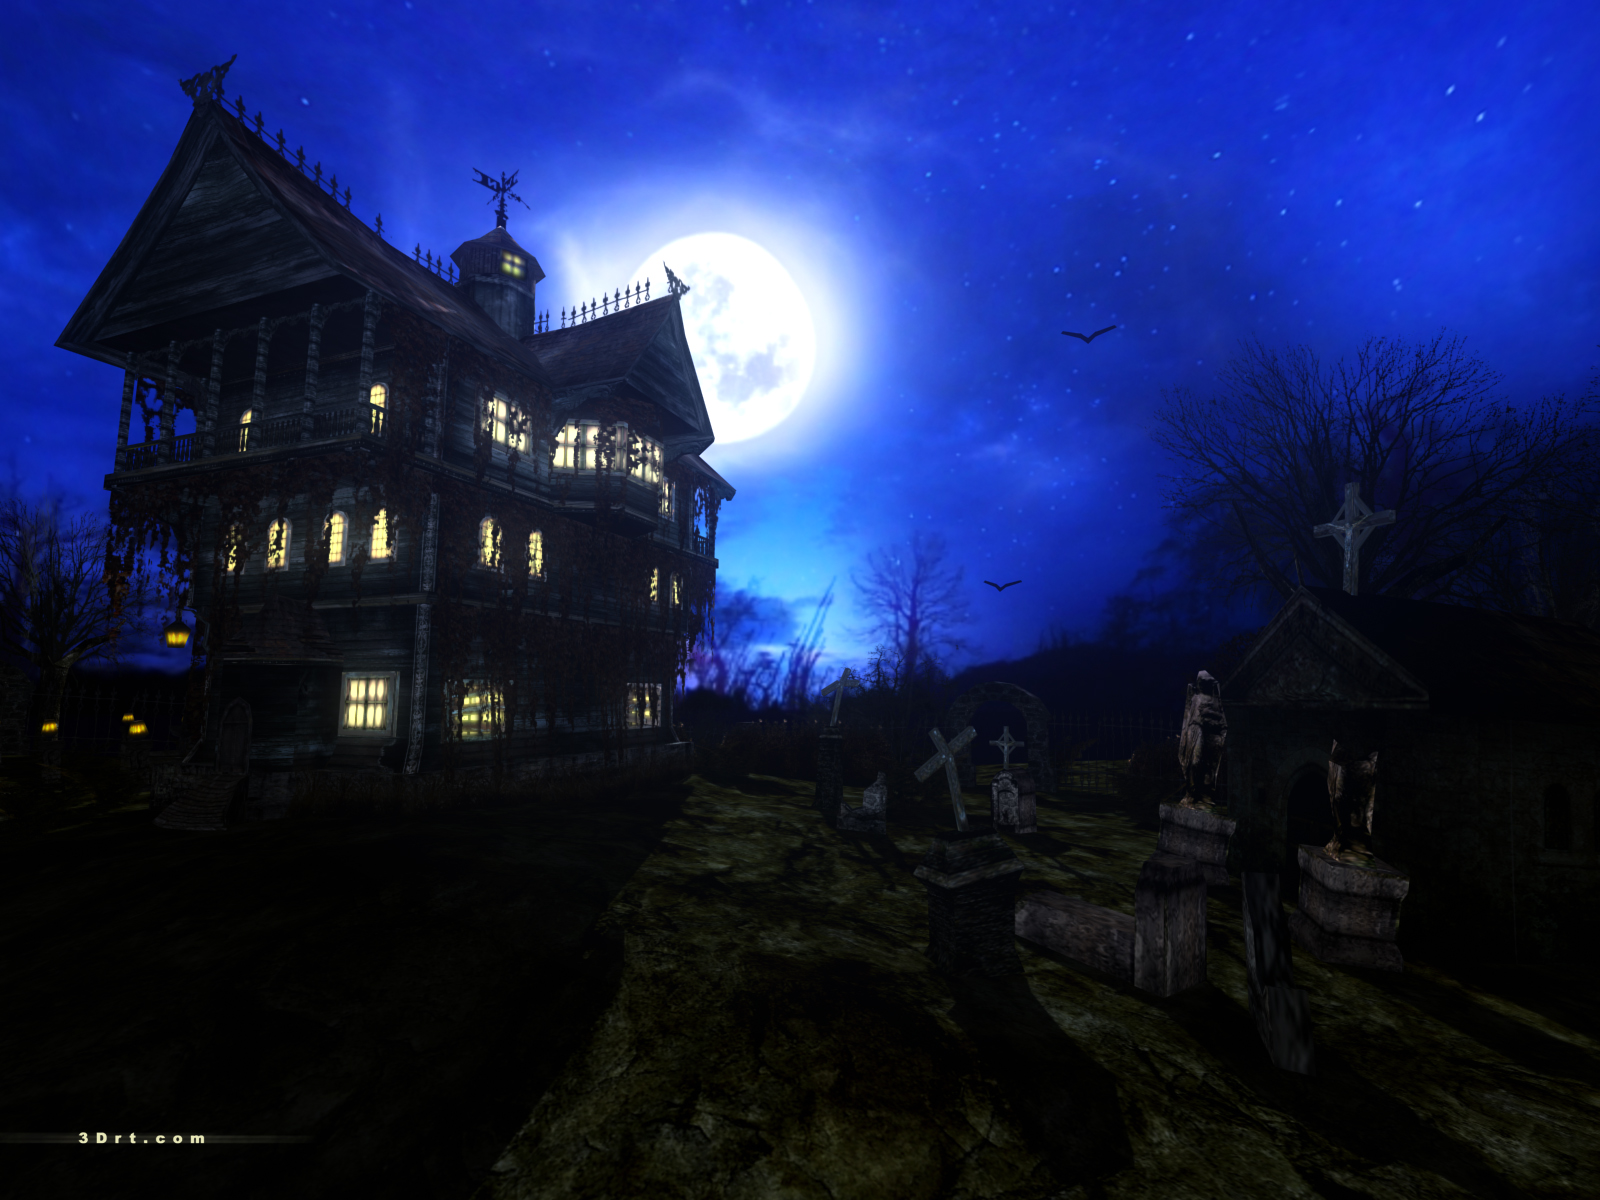 haunted house wallpaper - photo #26